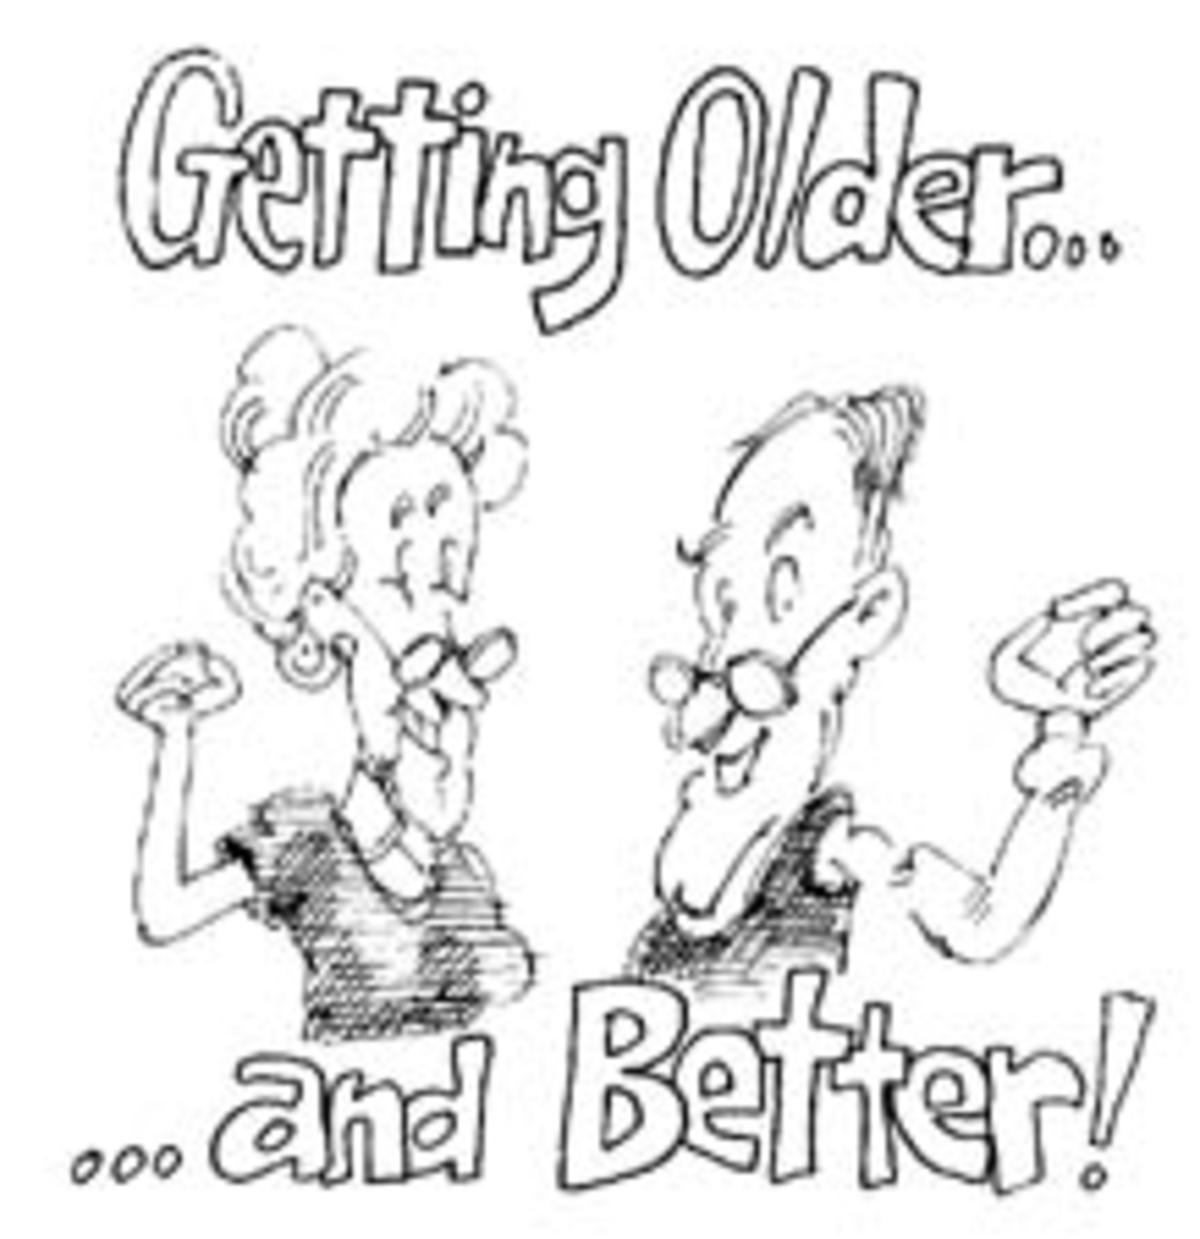 GROWING OLDER IS BETTER THAN THE ALTERNATIVE